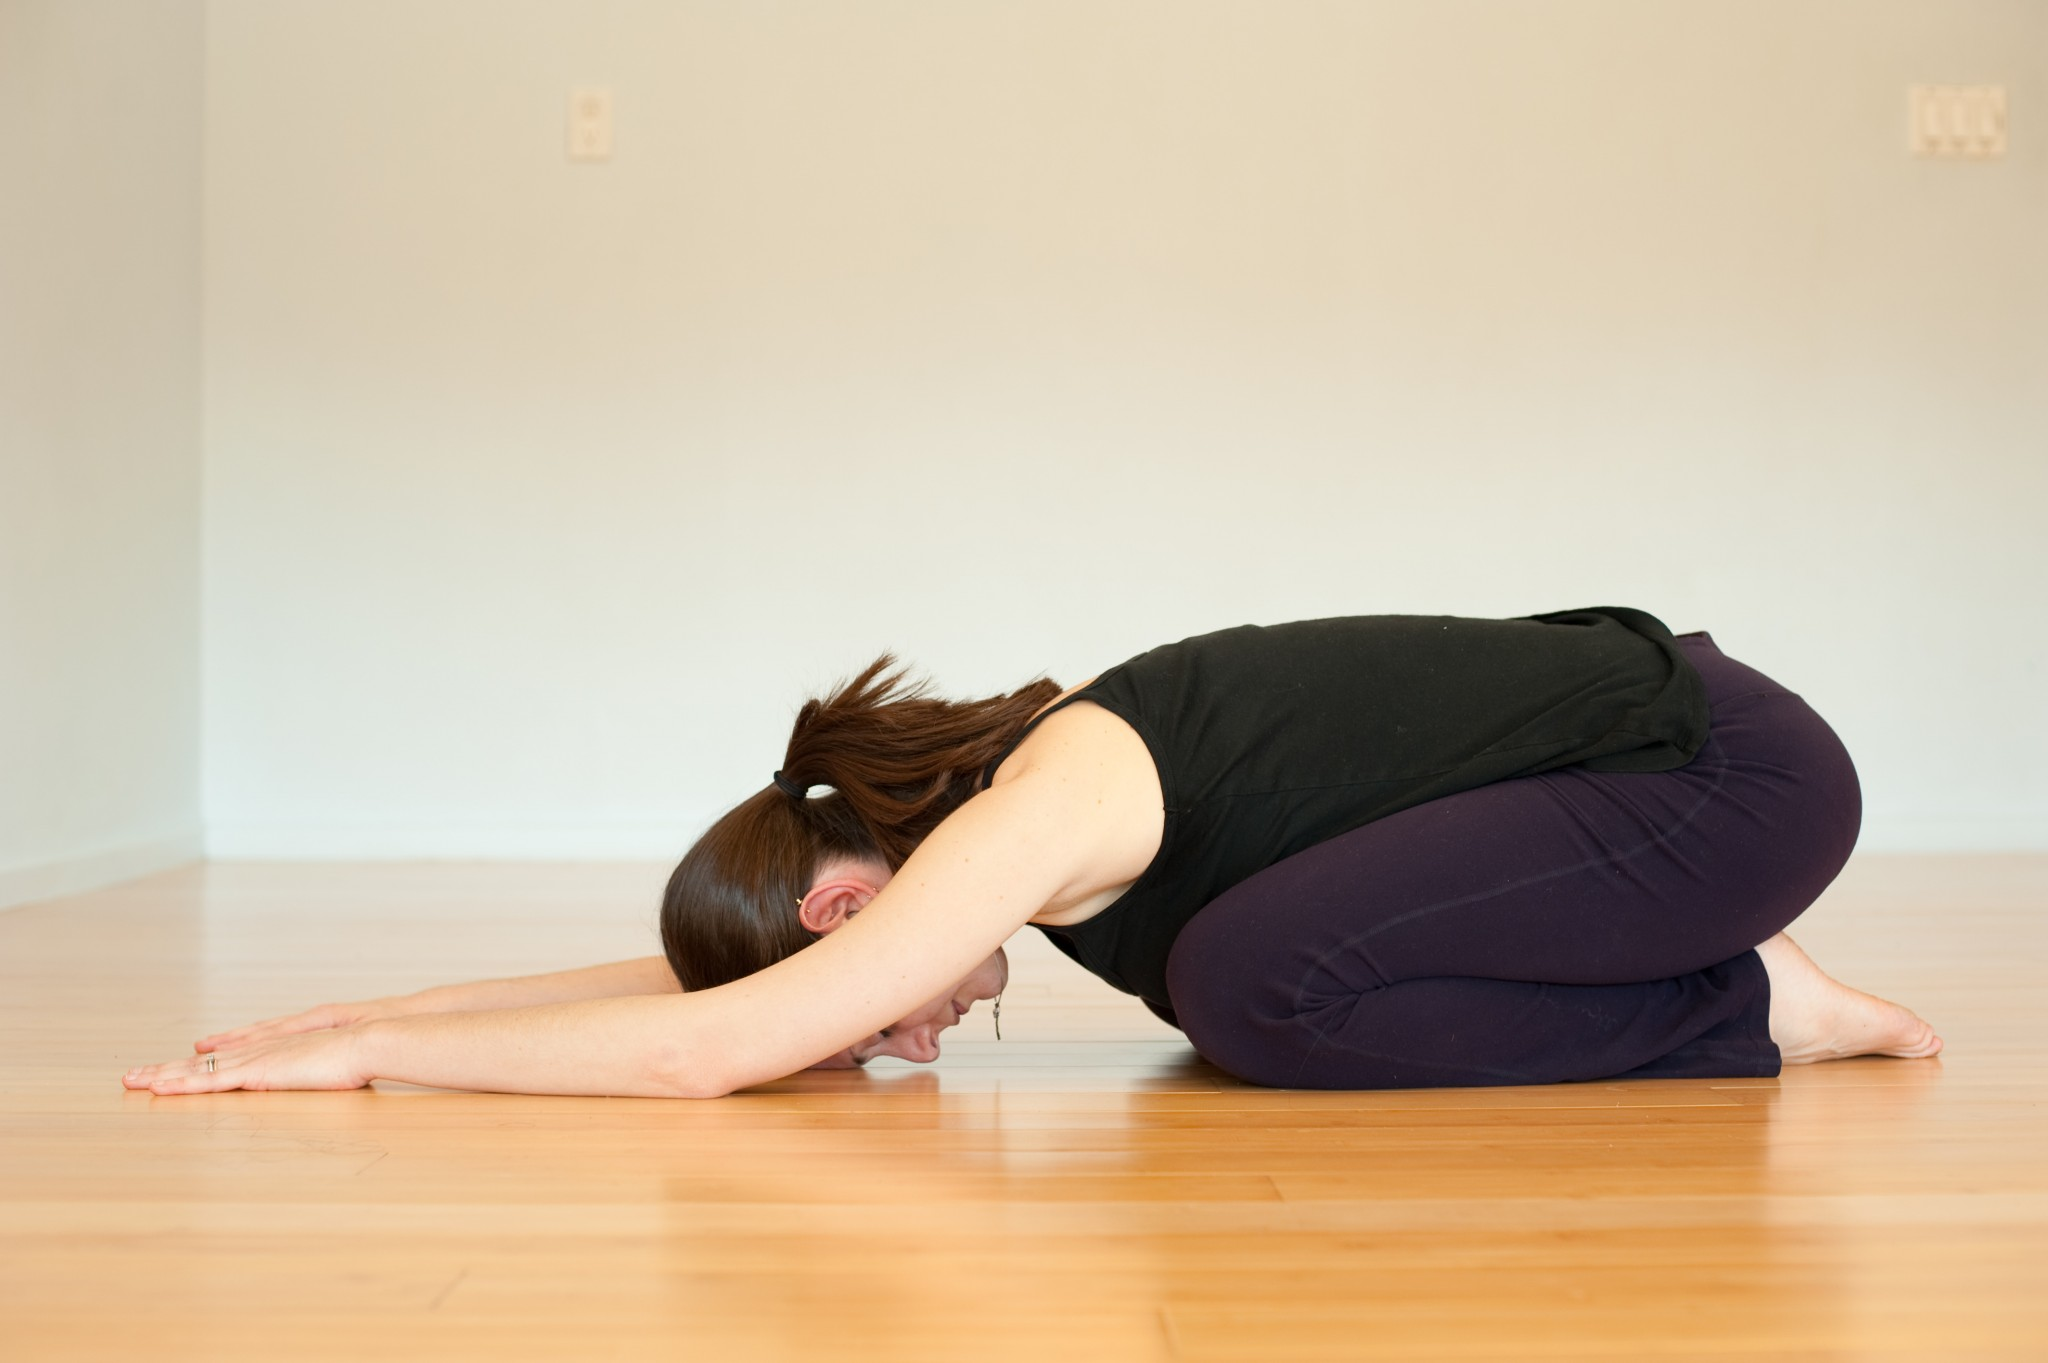 4. The Child Pose - The Best Yoga Poses for Pregnant Women